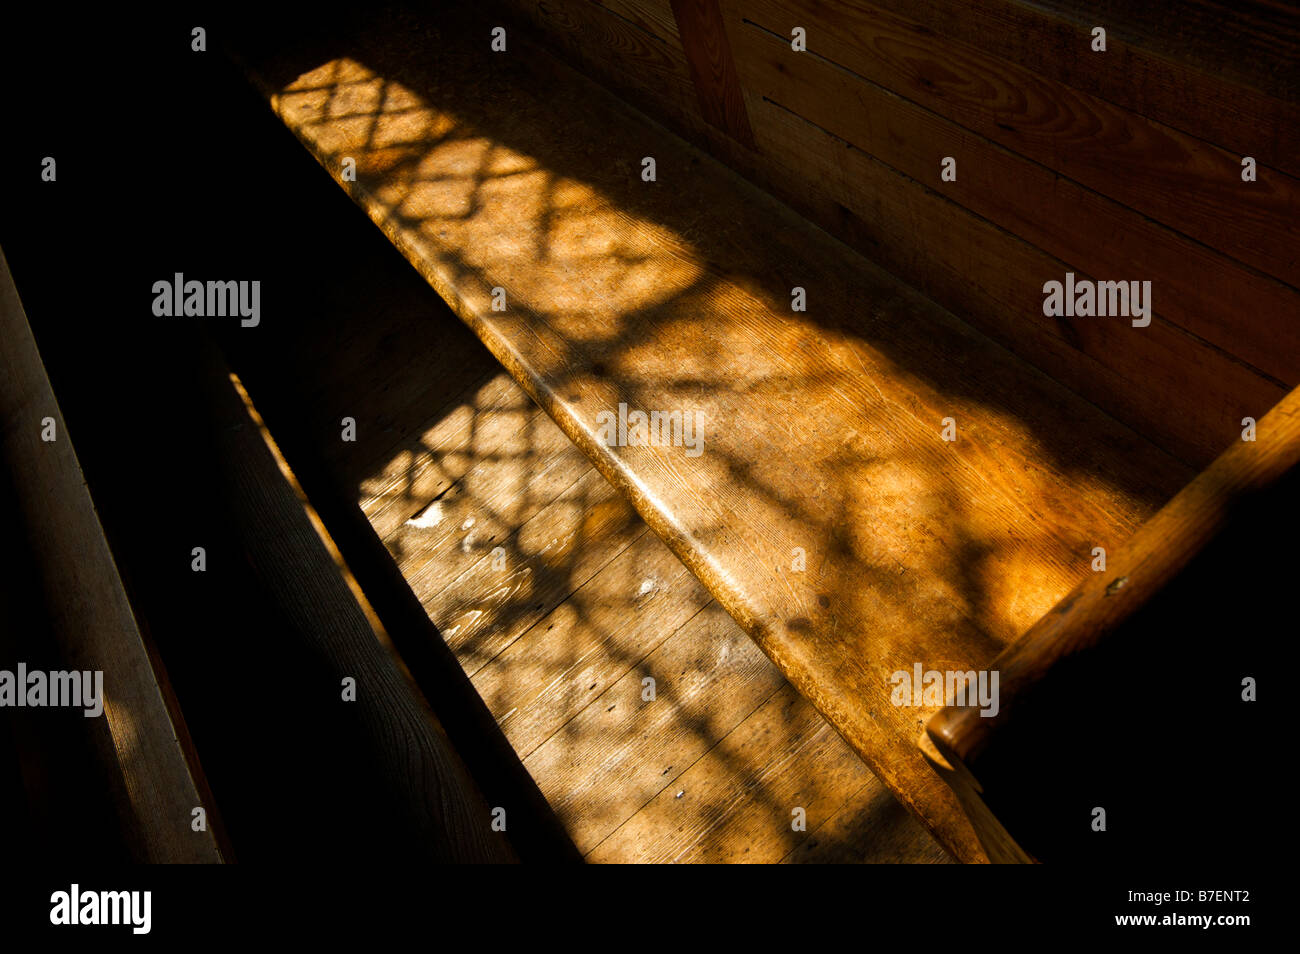 Sunlight form a church window falls on a wooden pew - Stock Image